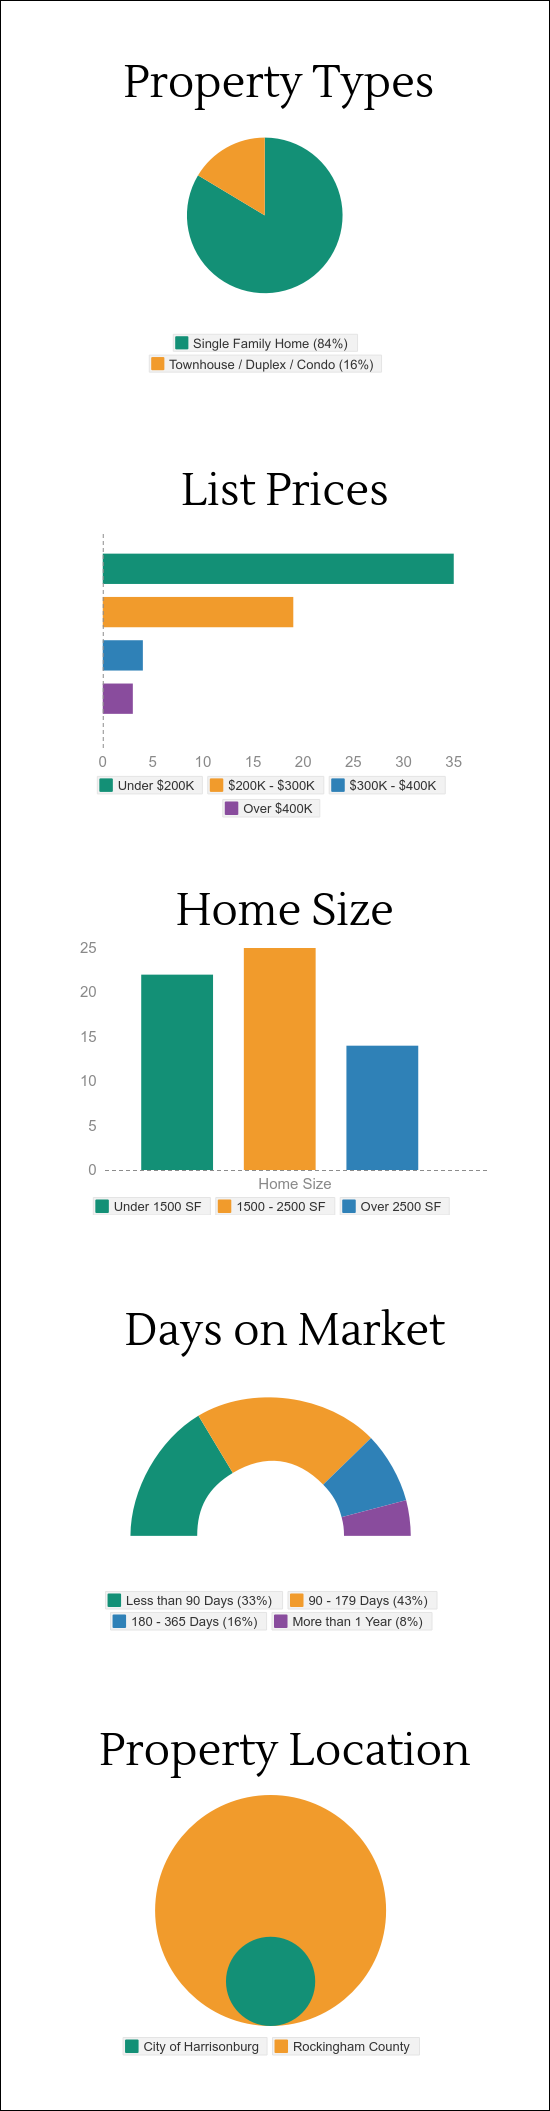 What did buyers buy in December 2014?